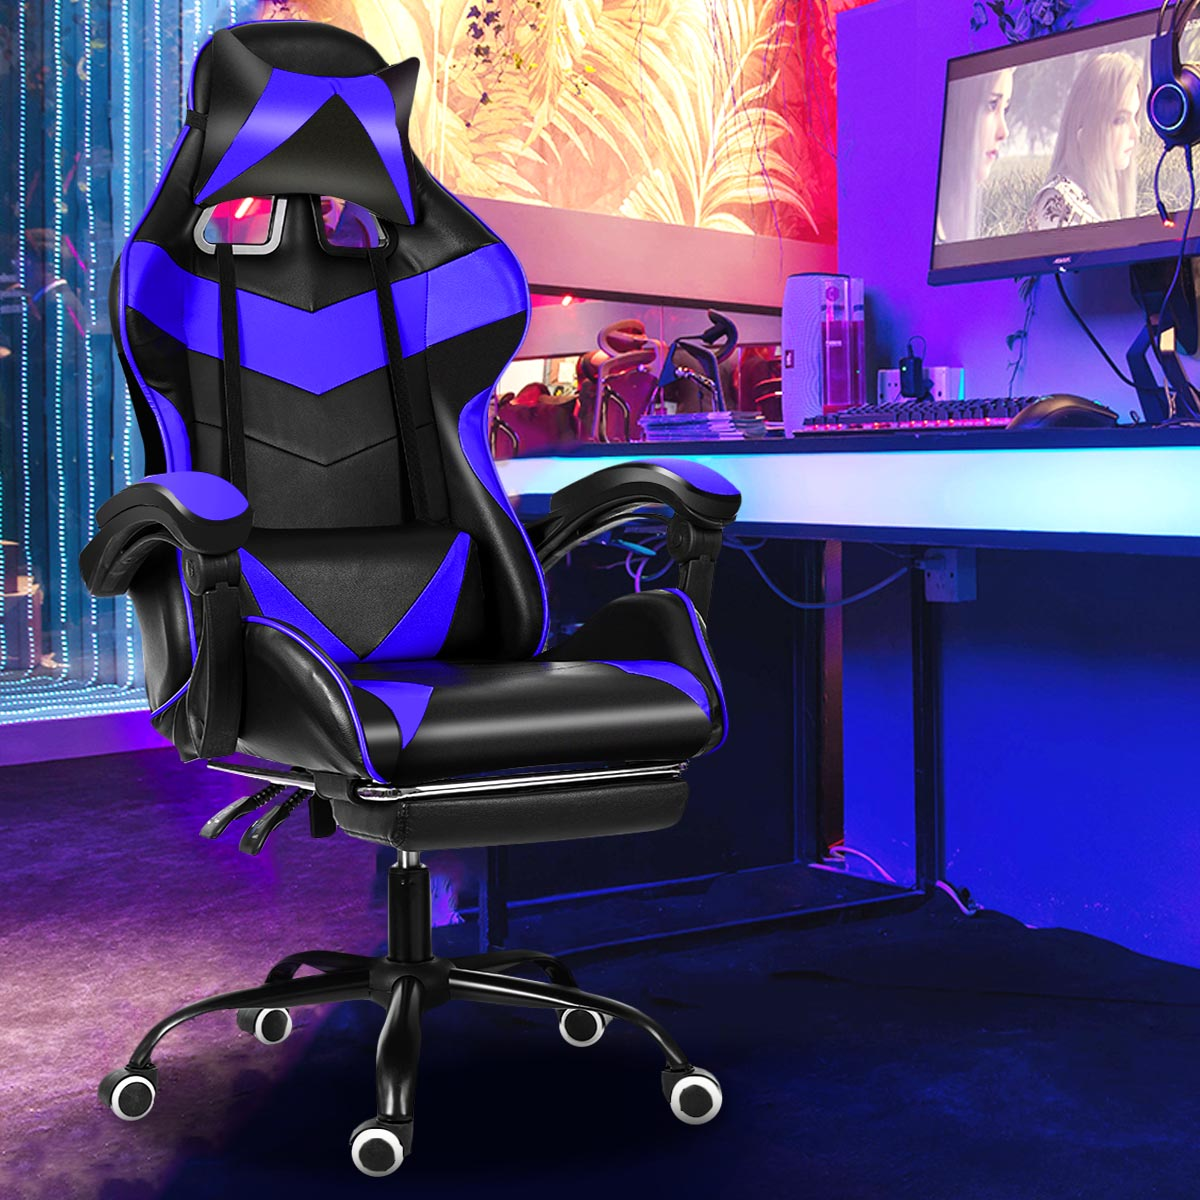 Haa864d0e2cdb423aa88df76890258d13h - Office Gaming Chair WCG Gaming Chair Home Internet Cafe Gamer Chair Ergonomic Computer Office Chair Swivel Lifting LyingFootrest